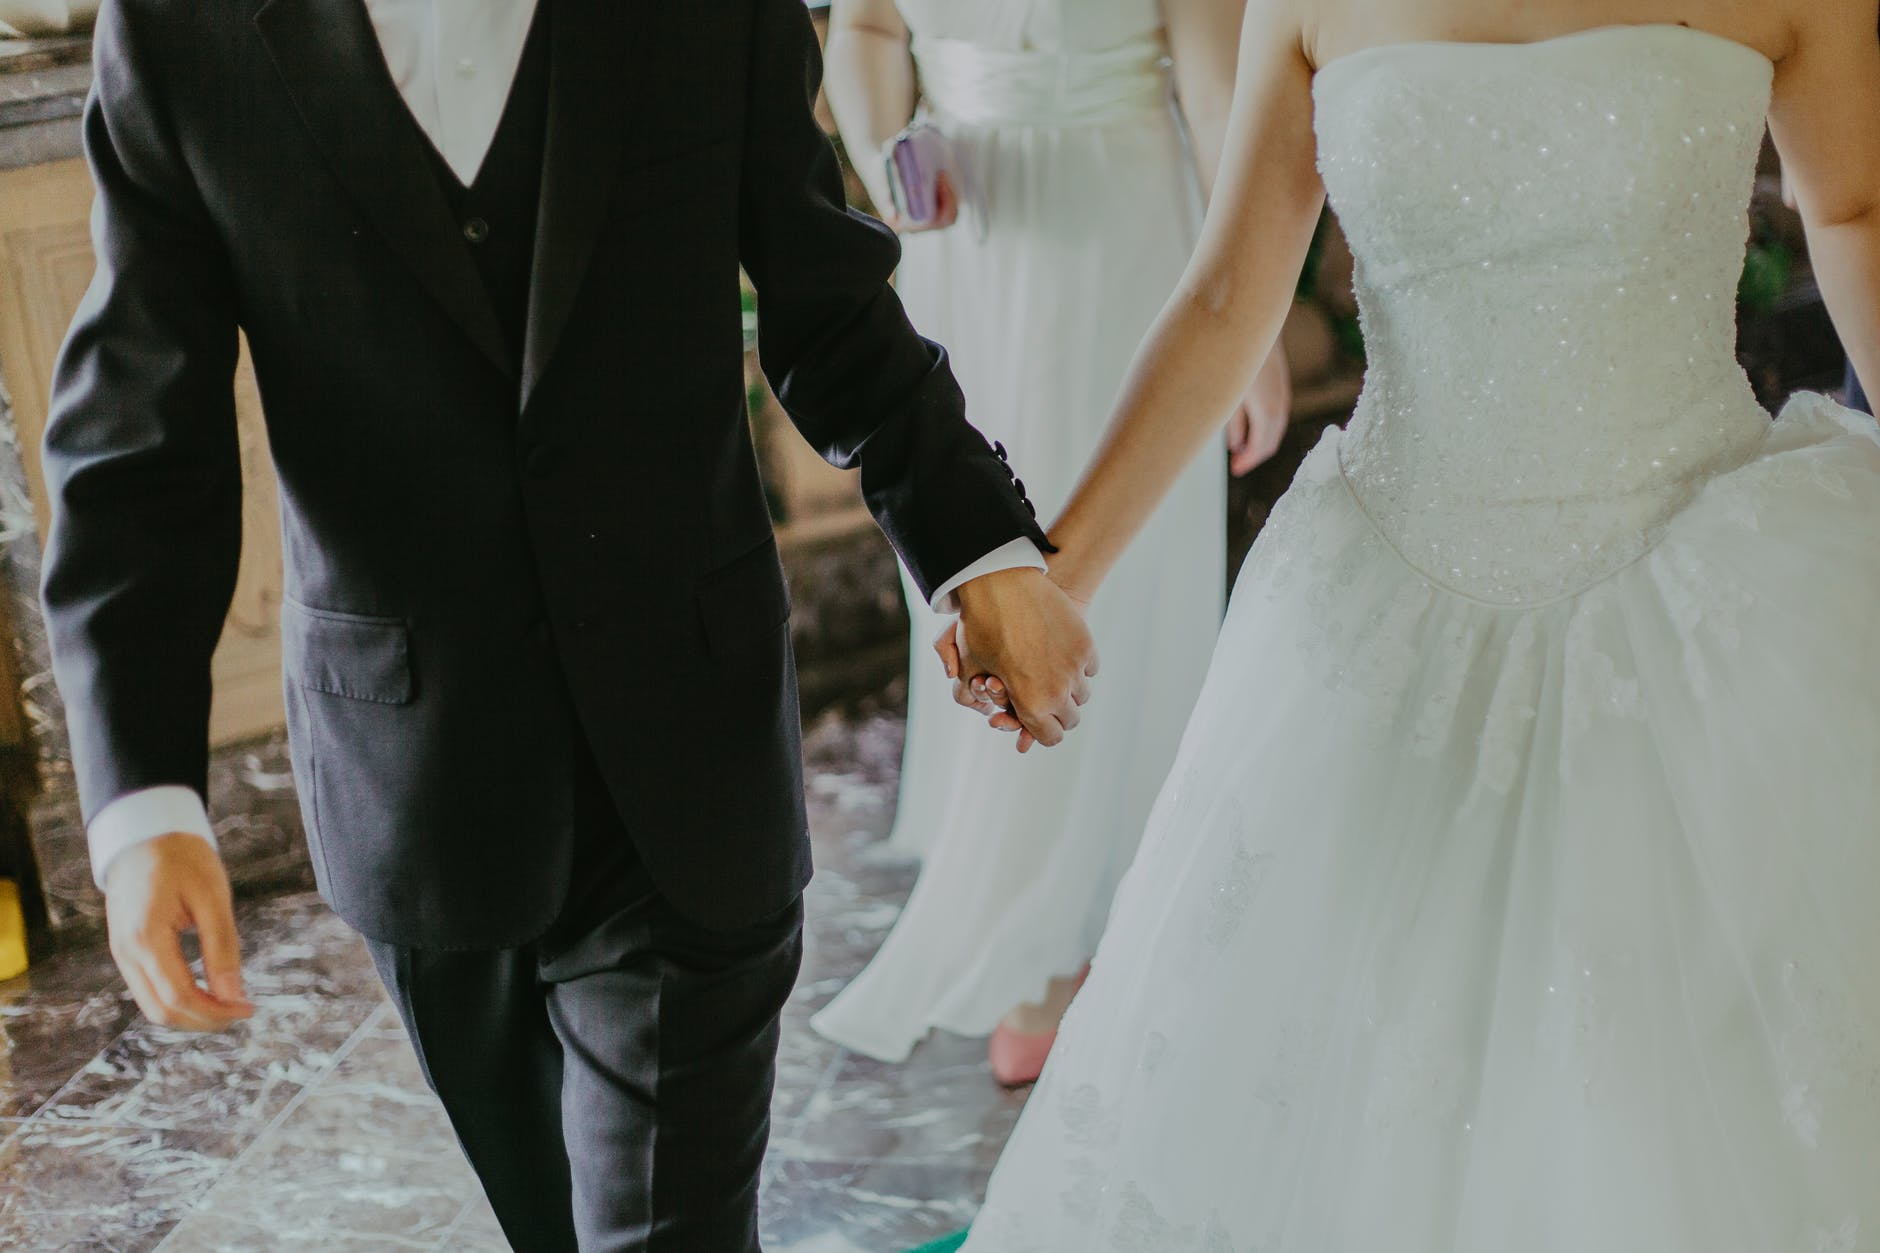 My father married another woman quickly. | Source: Pexels